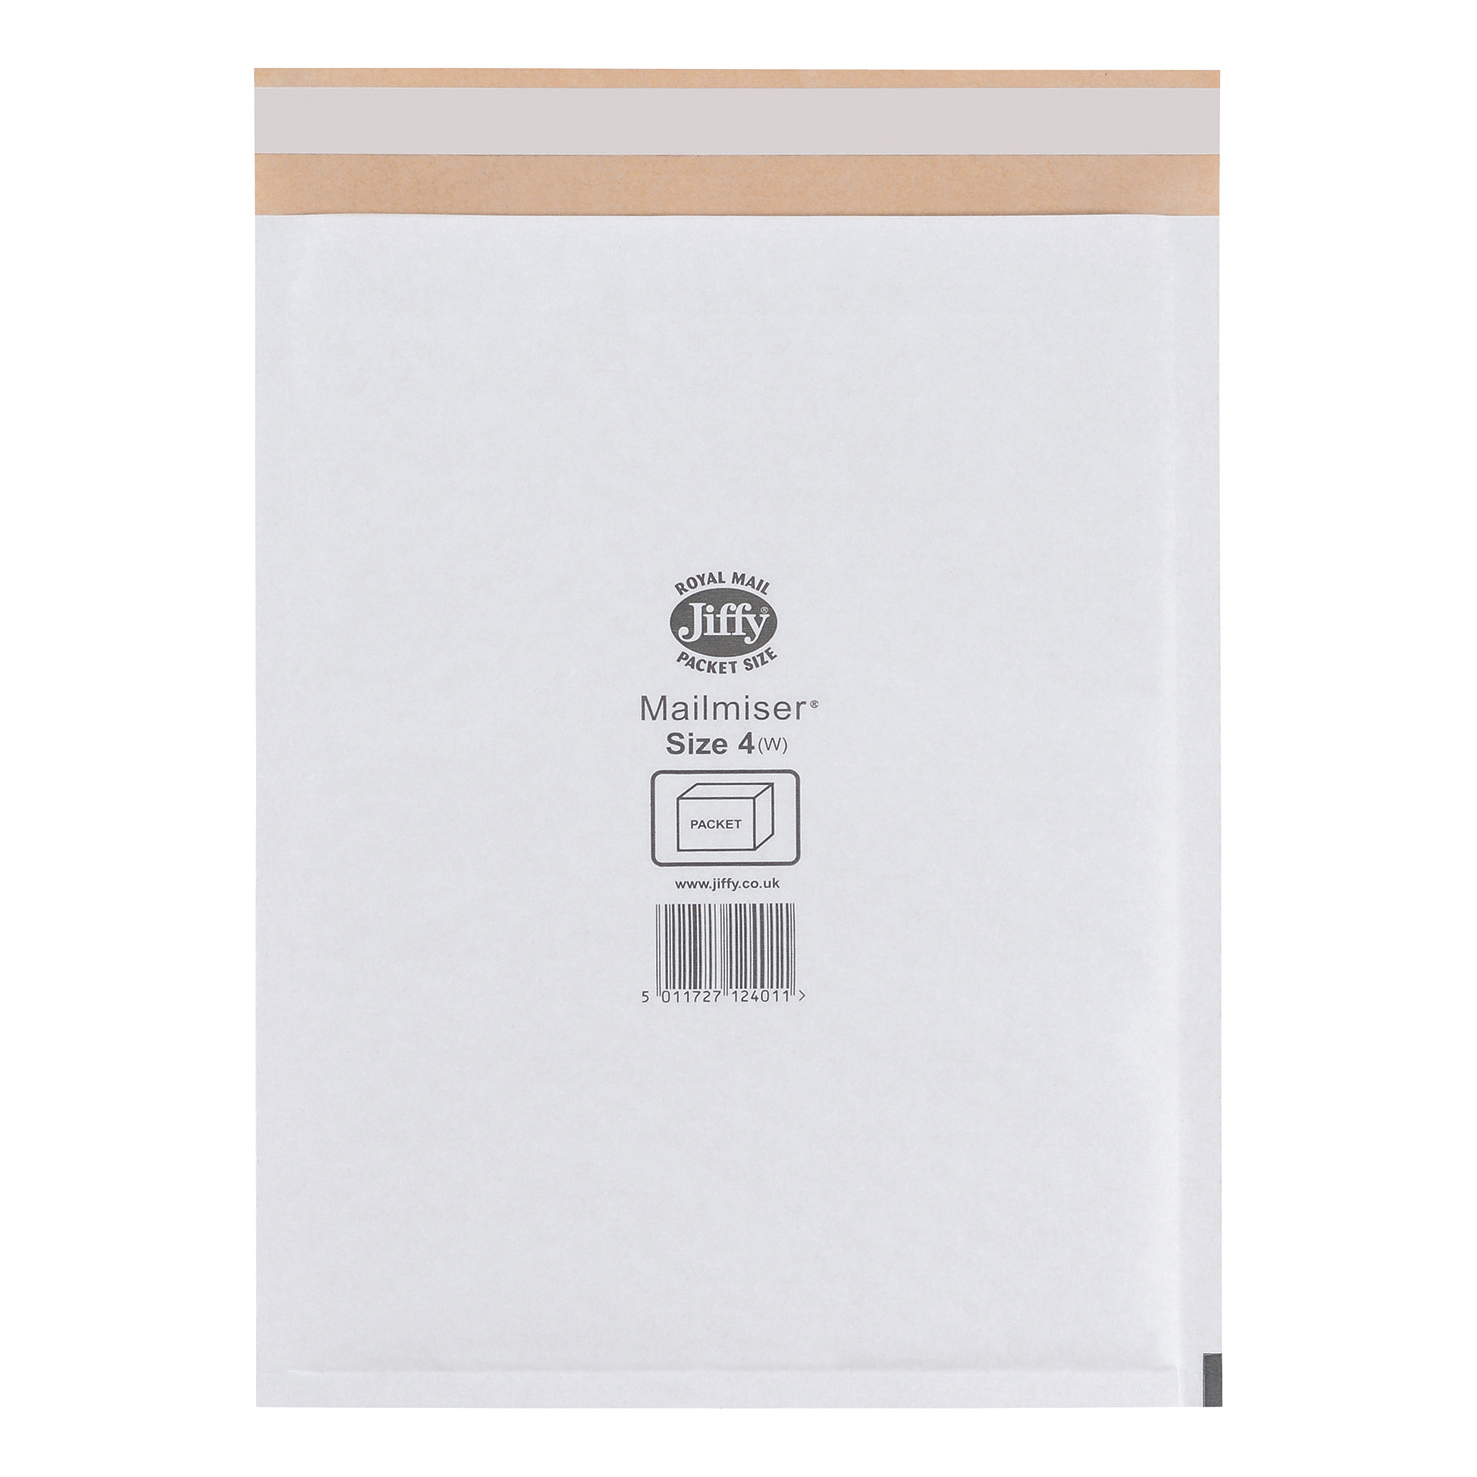 Padded Bags & Envelopes Jiffy Mailmiser Protective Envelopes Bubble-lined Size 4 P&S 240x320mm White Ref JMM-WH-4 [Pack 50]